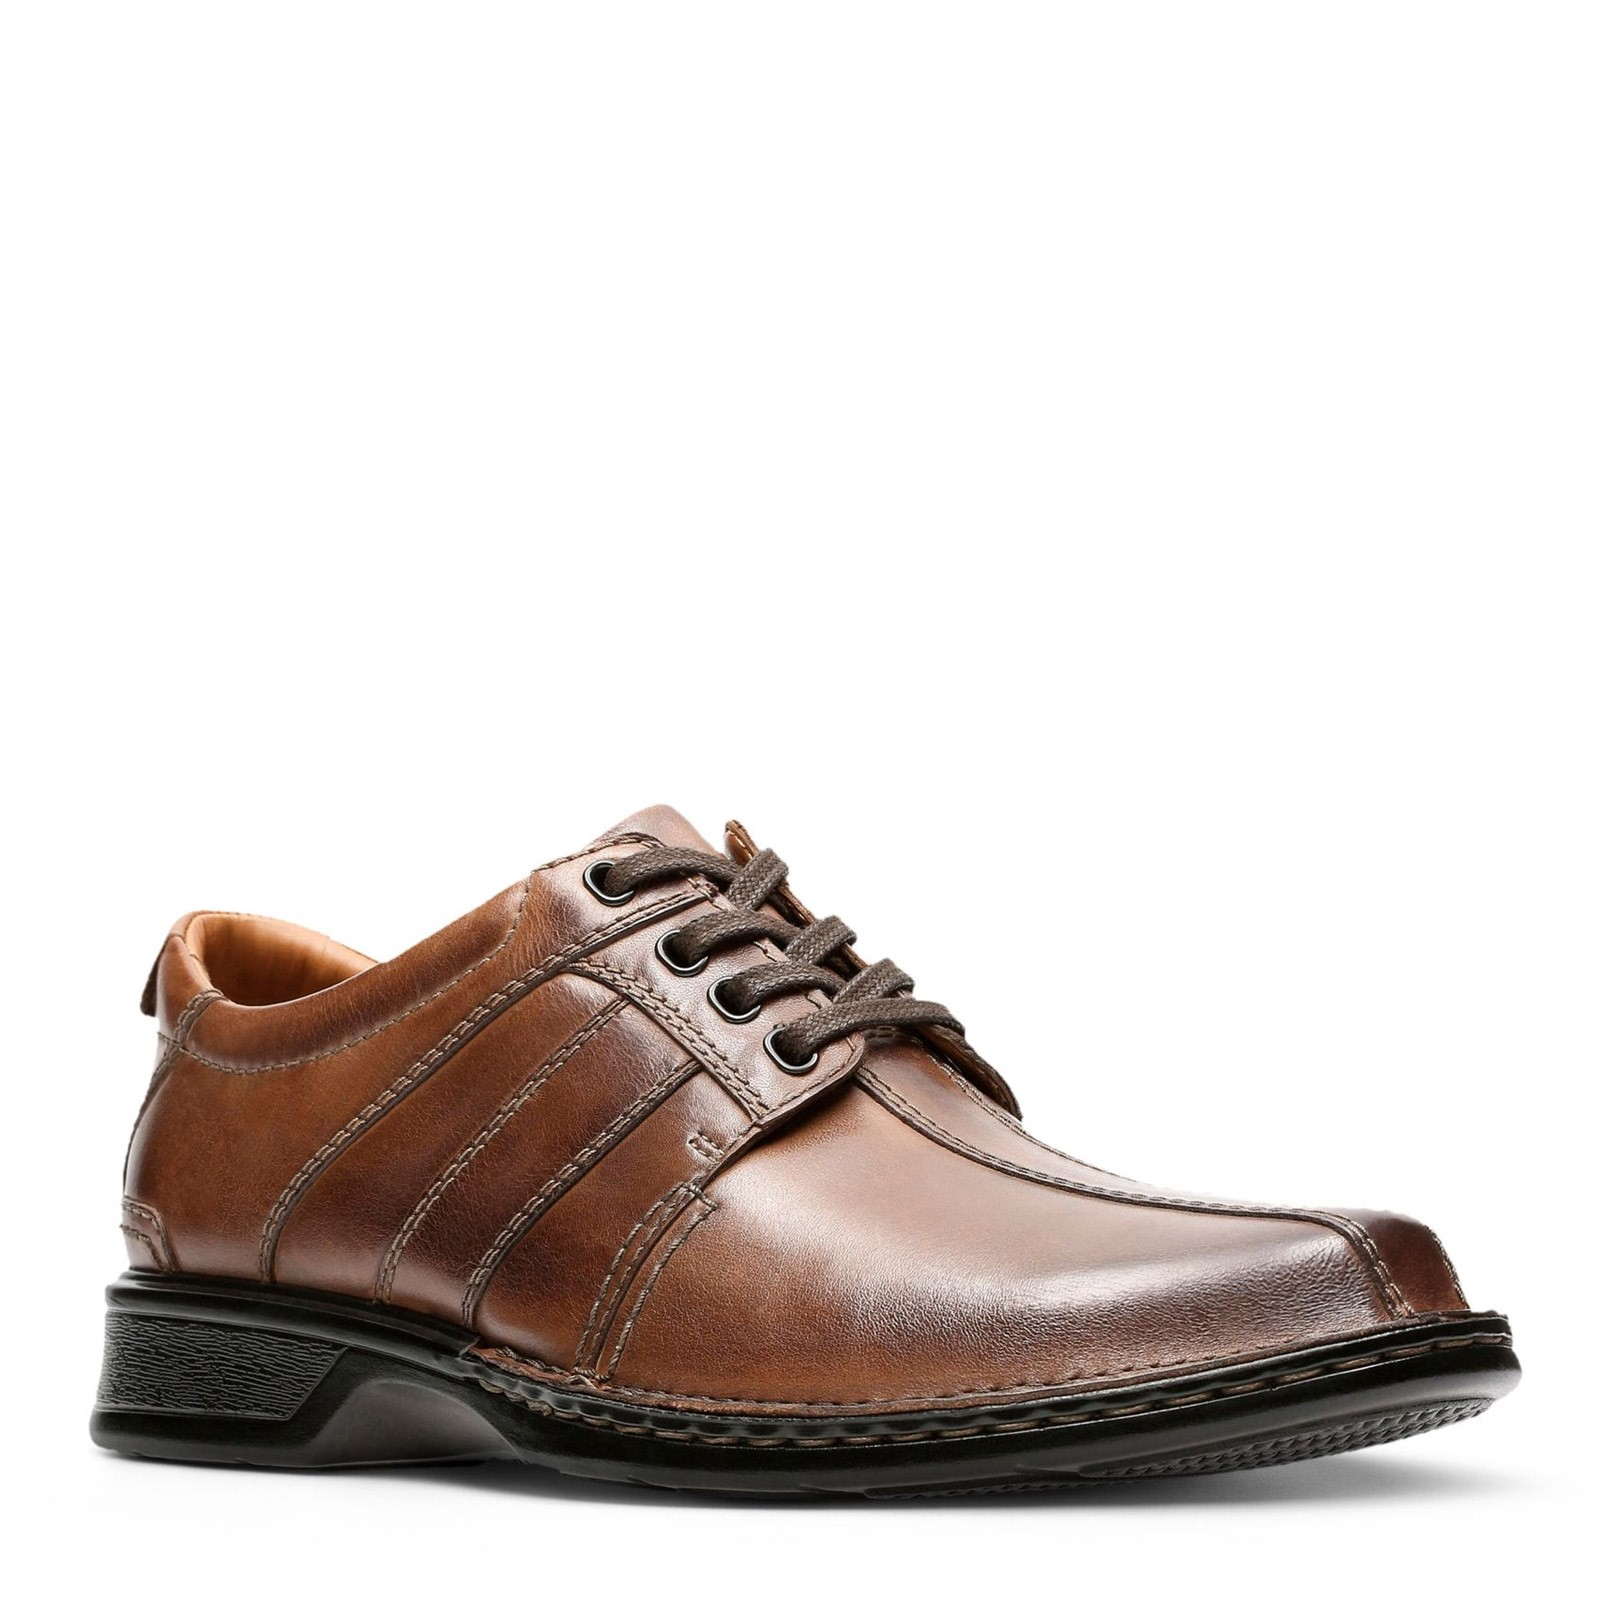 Men's Clarks, Touareg Vibe Lace up Shoe